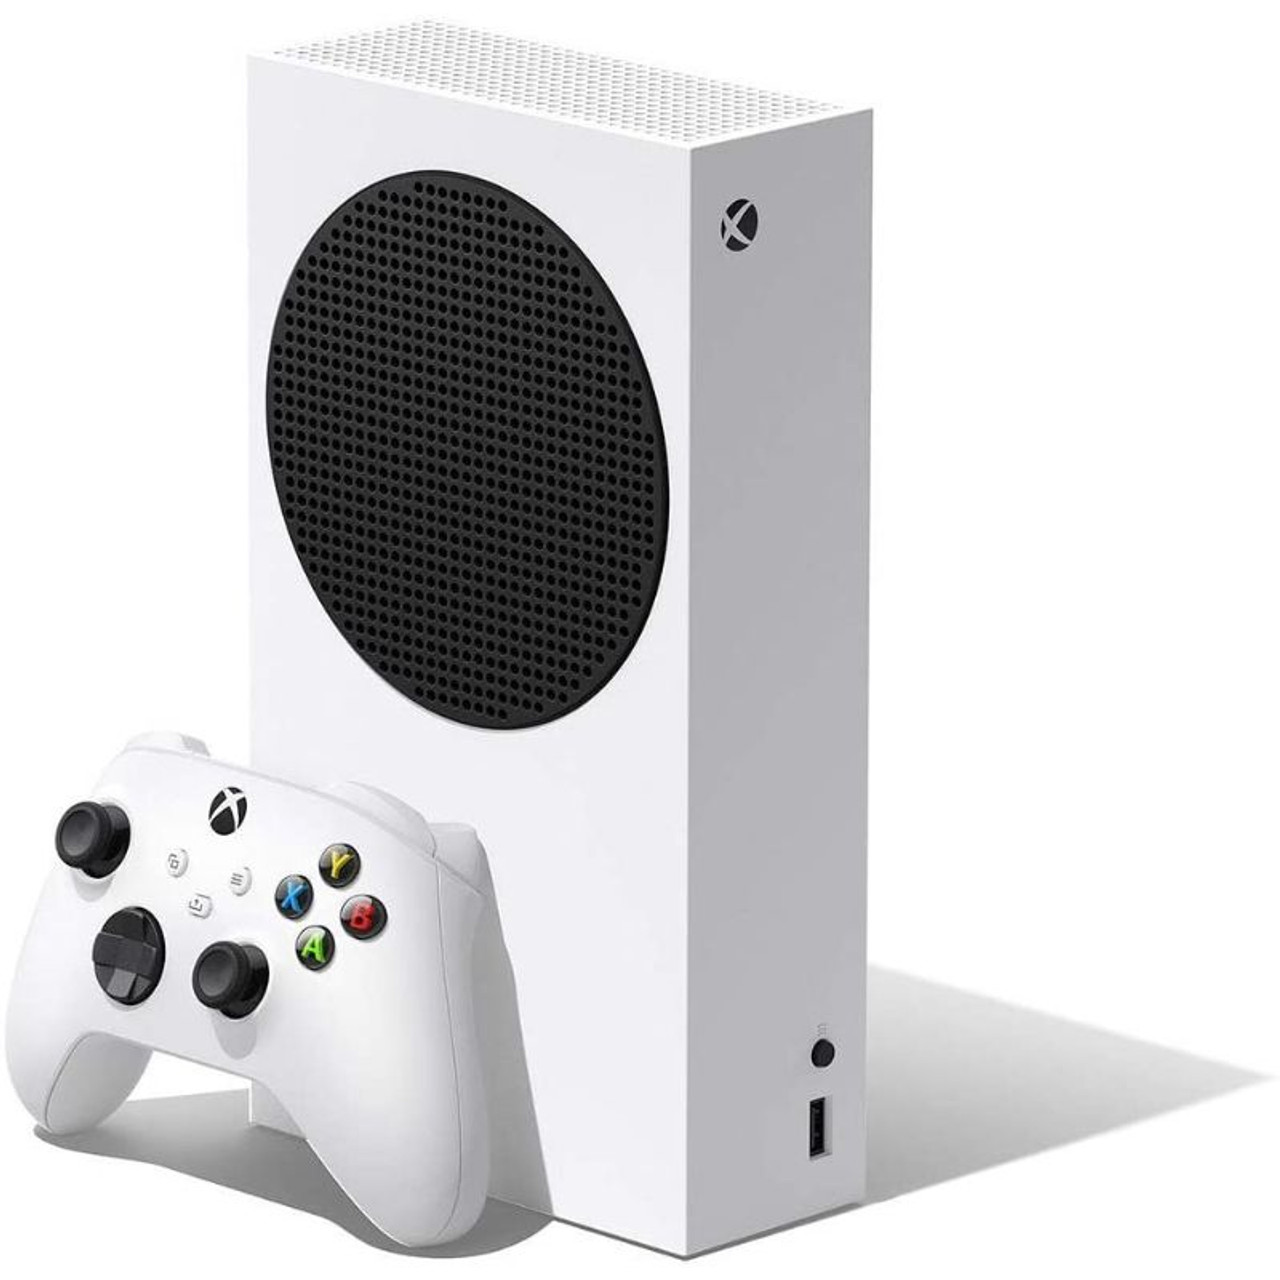 Microsoft Xbox Series S 512GB All-Digital Console Disc-free Gaming - White